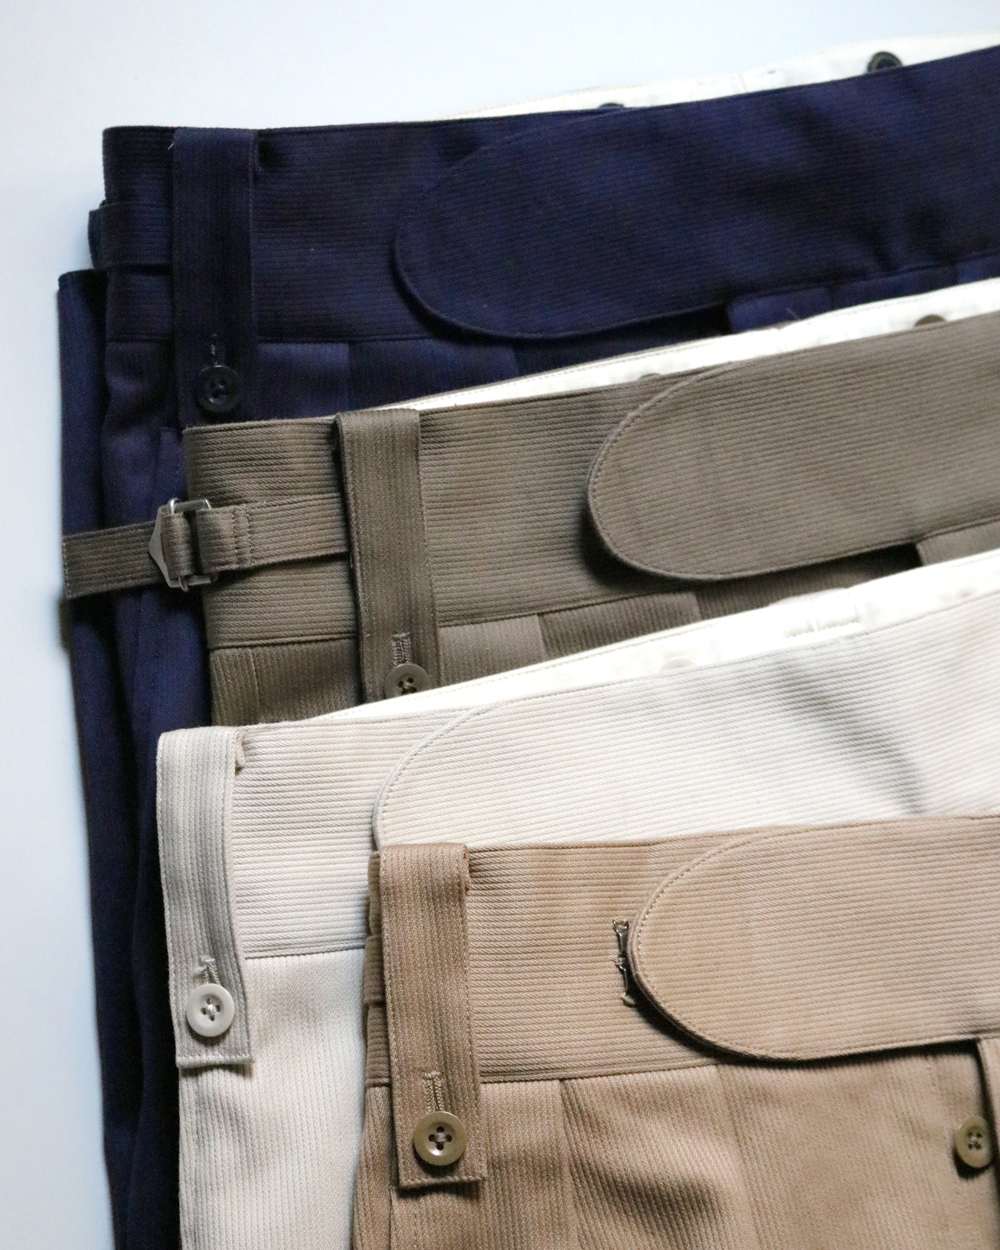 COTTON PIQUE|BELTLESS - Khaki|NEAT